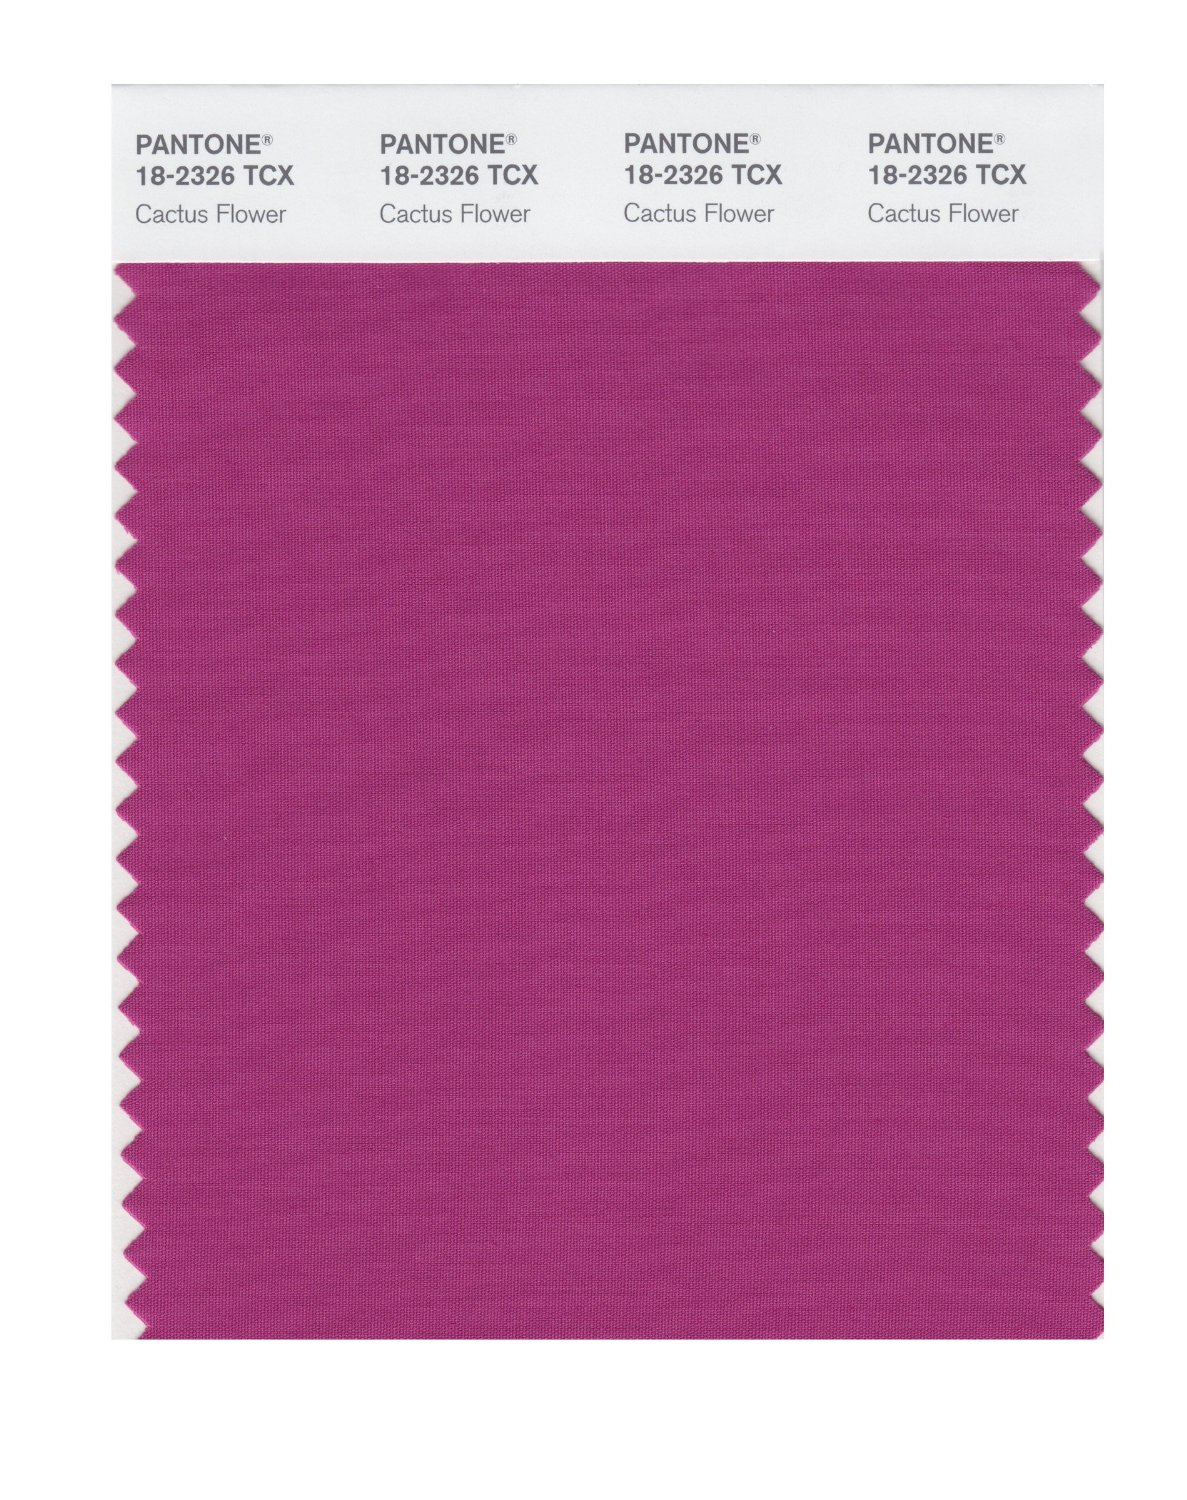 Pantone Smart Swatch 18-2326 Cactus Flower